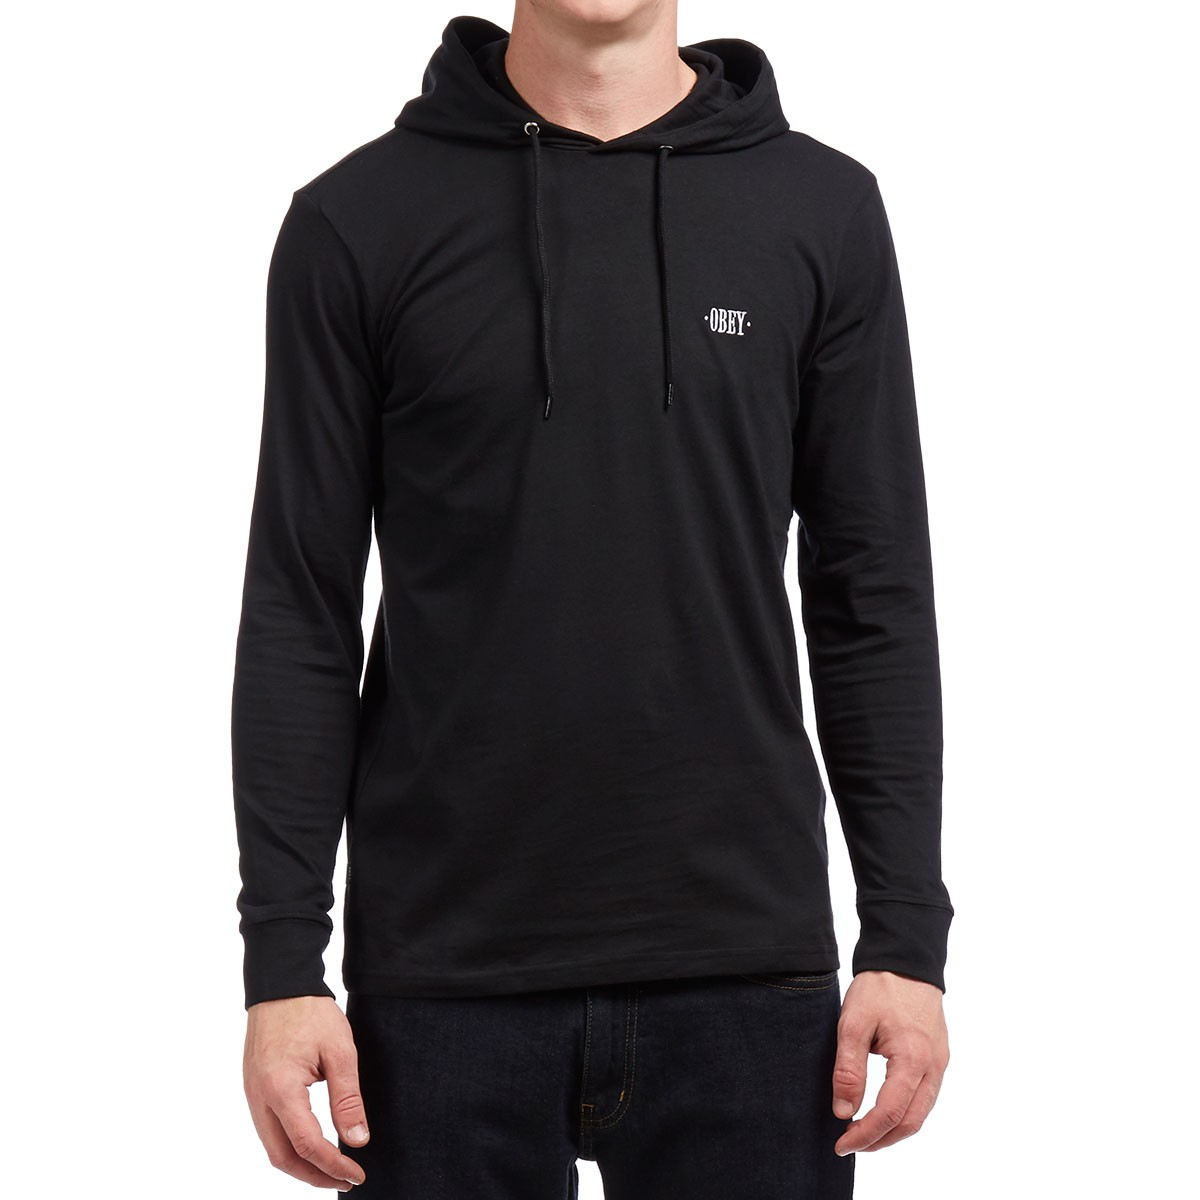 Metier Hooded Long Sleeve T-Shirt - Black